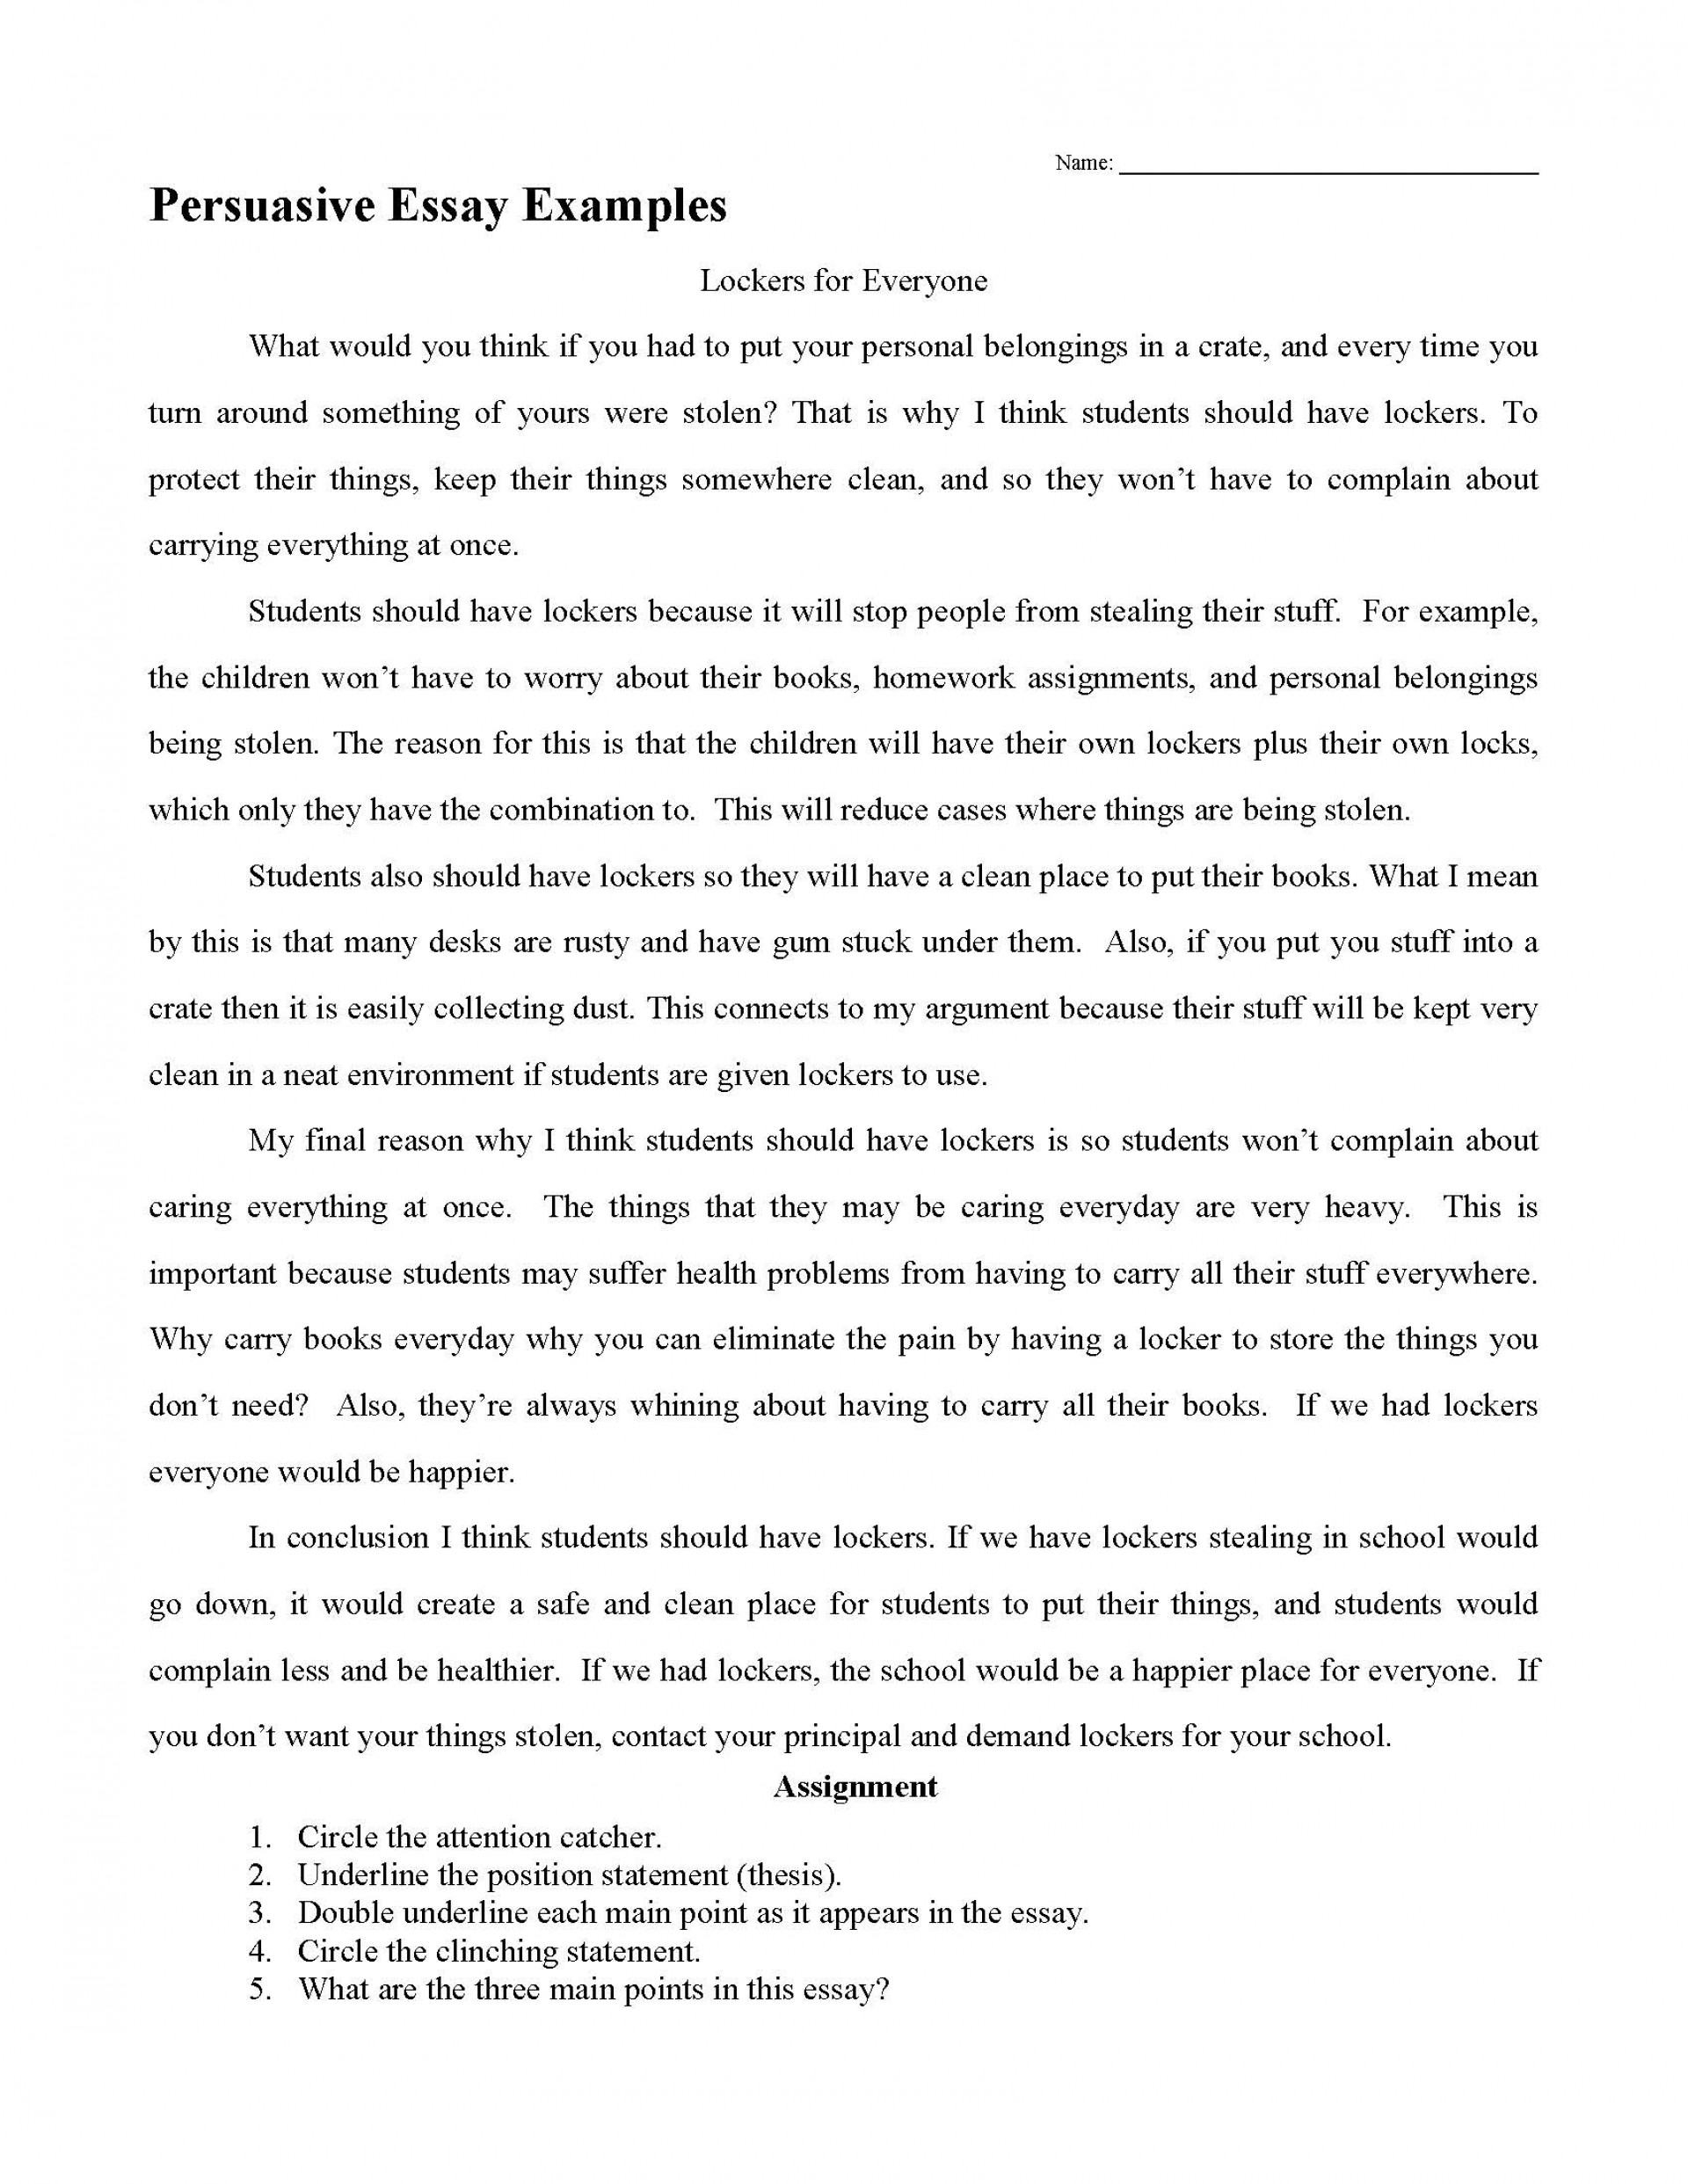 003 Essay Example Persuasive Examples Impressive Sample High School Samples Grade 6 5th 1920